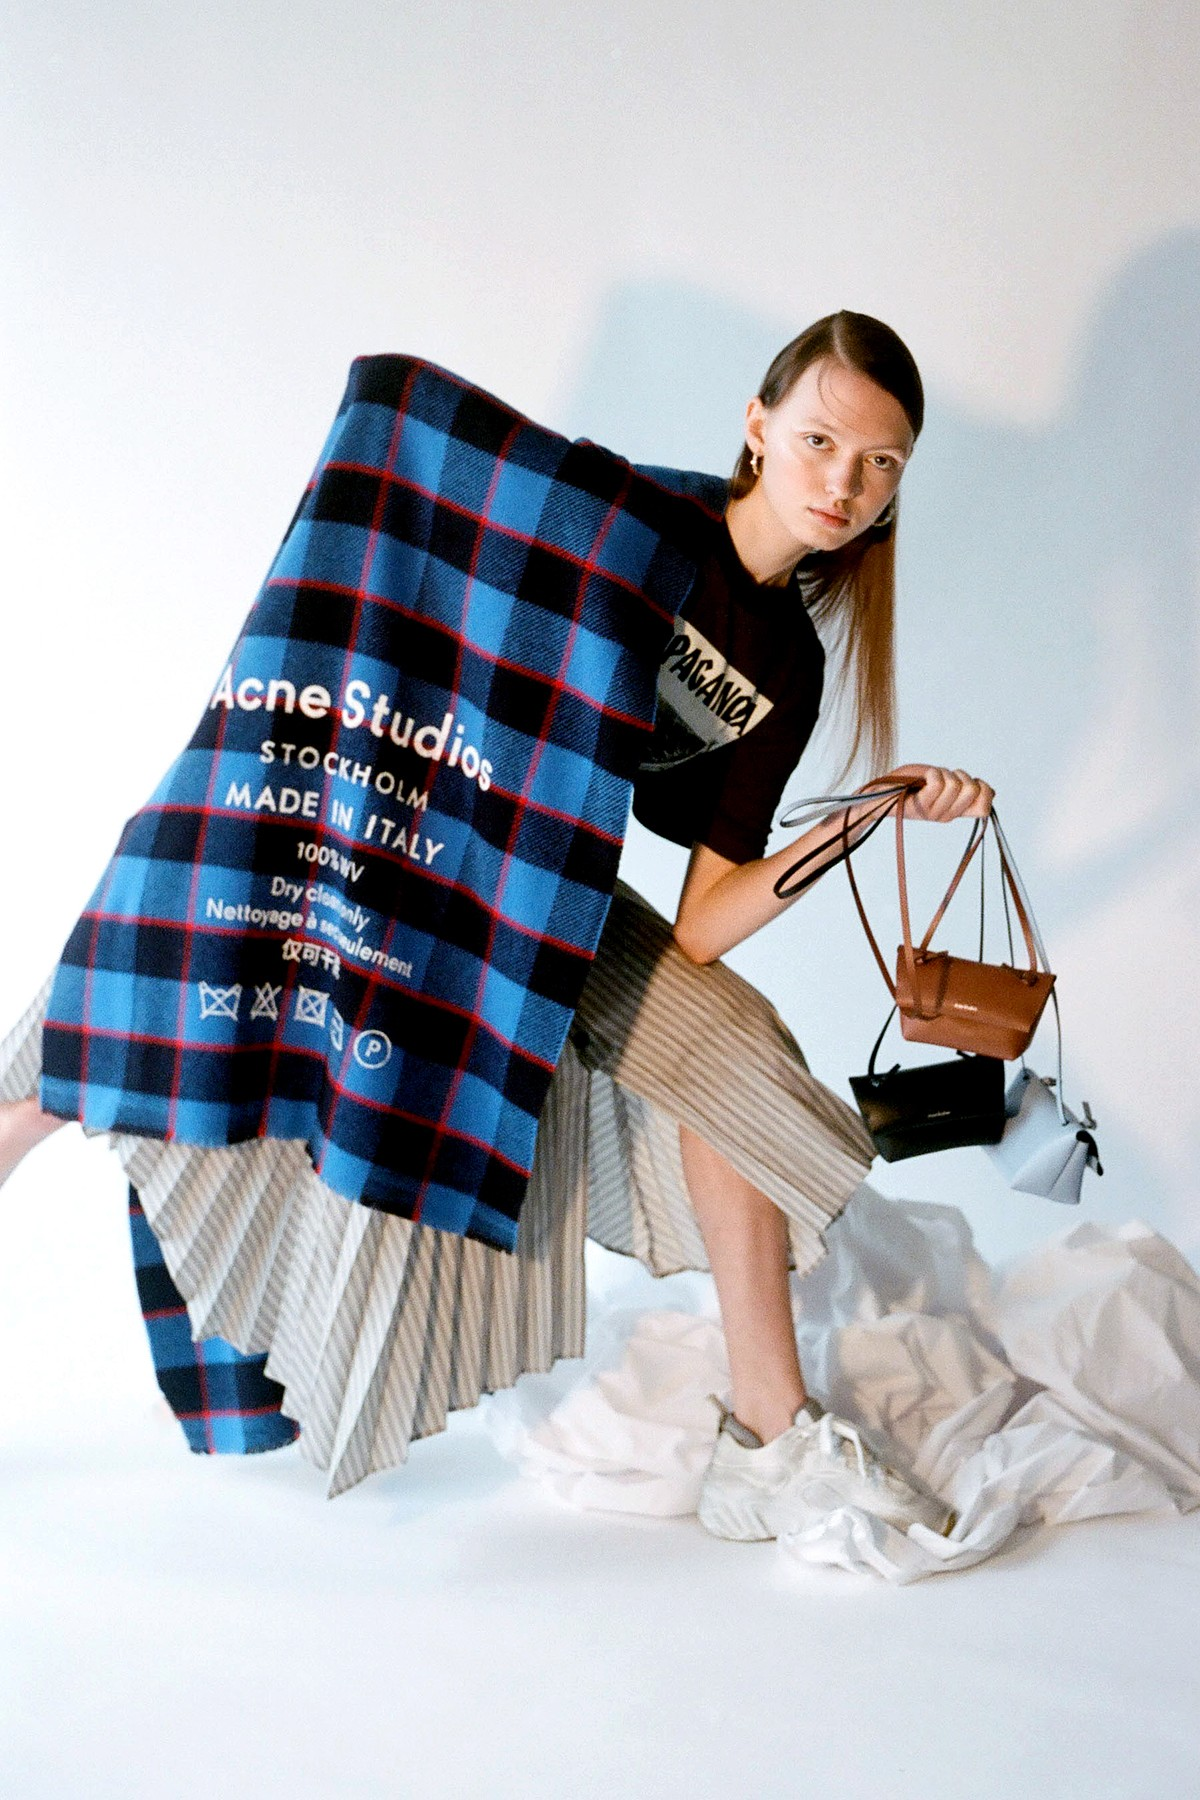 acne studios spring summer collection handbags scarf t shirt release